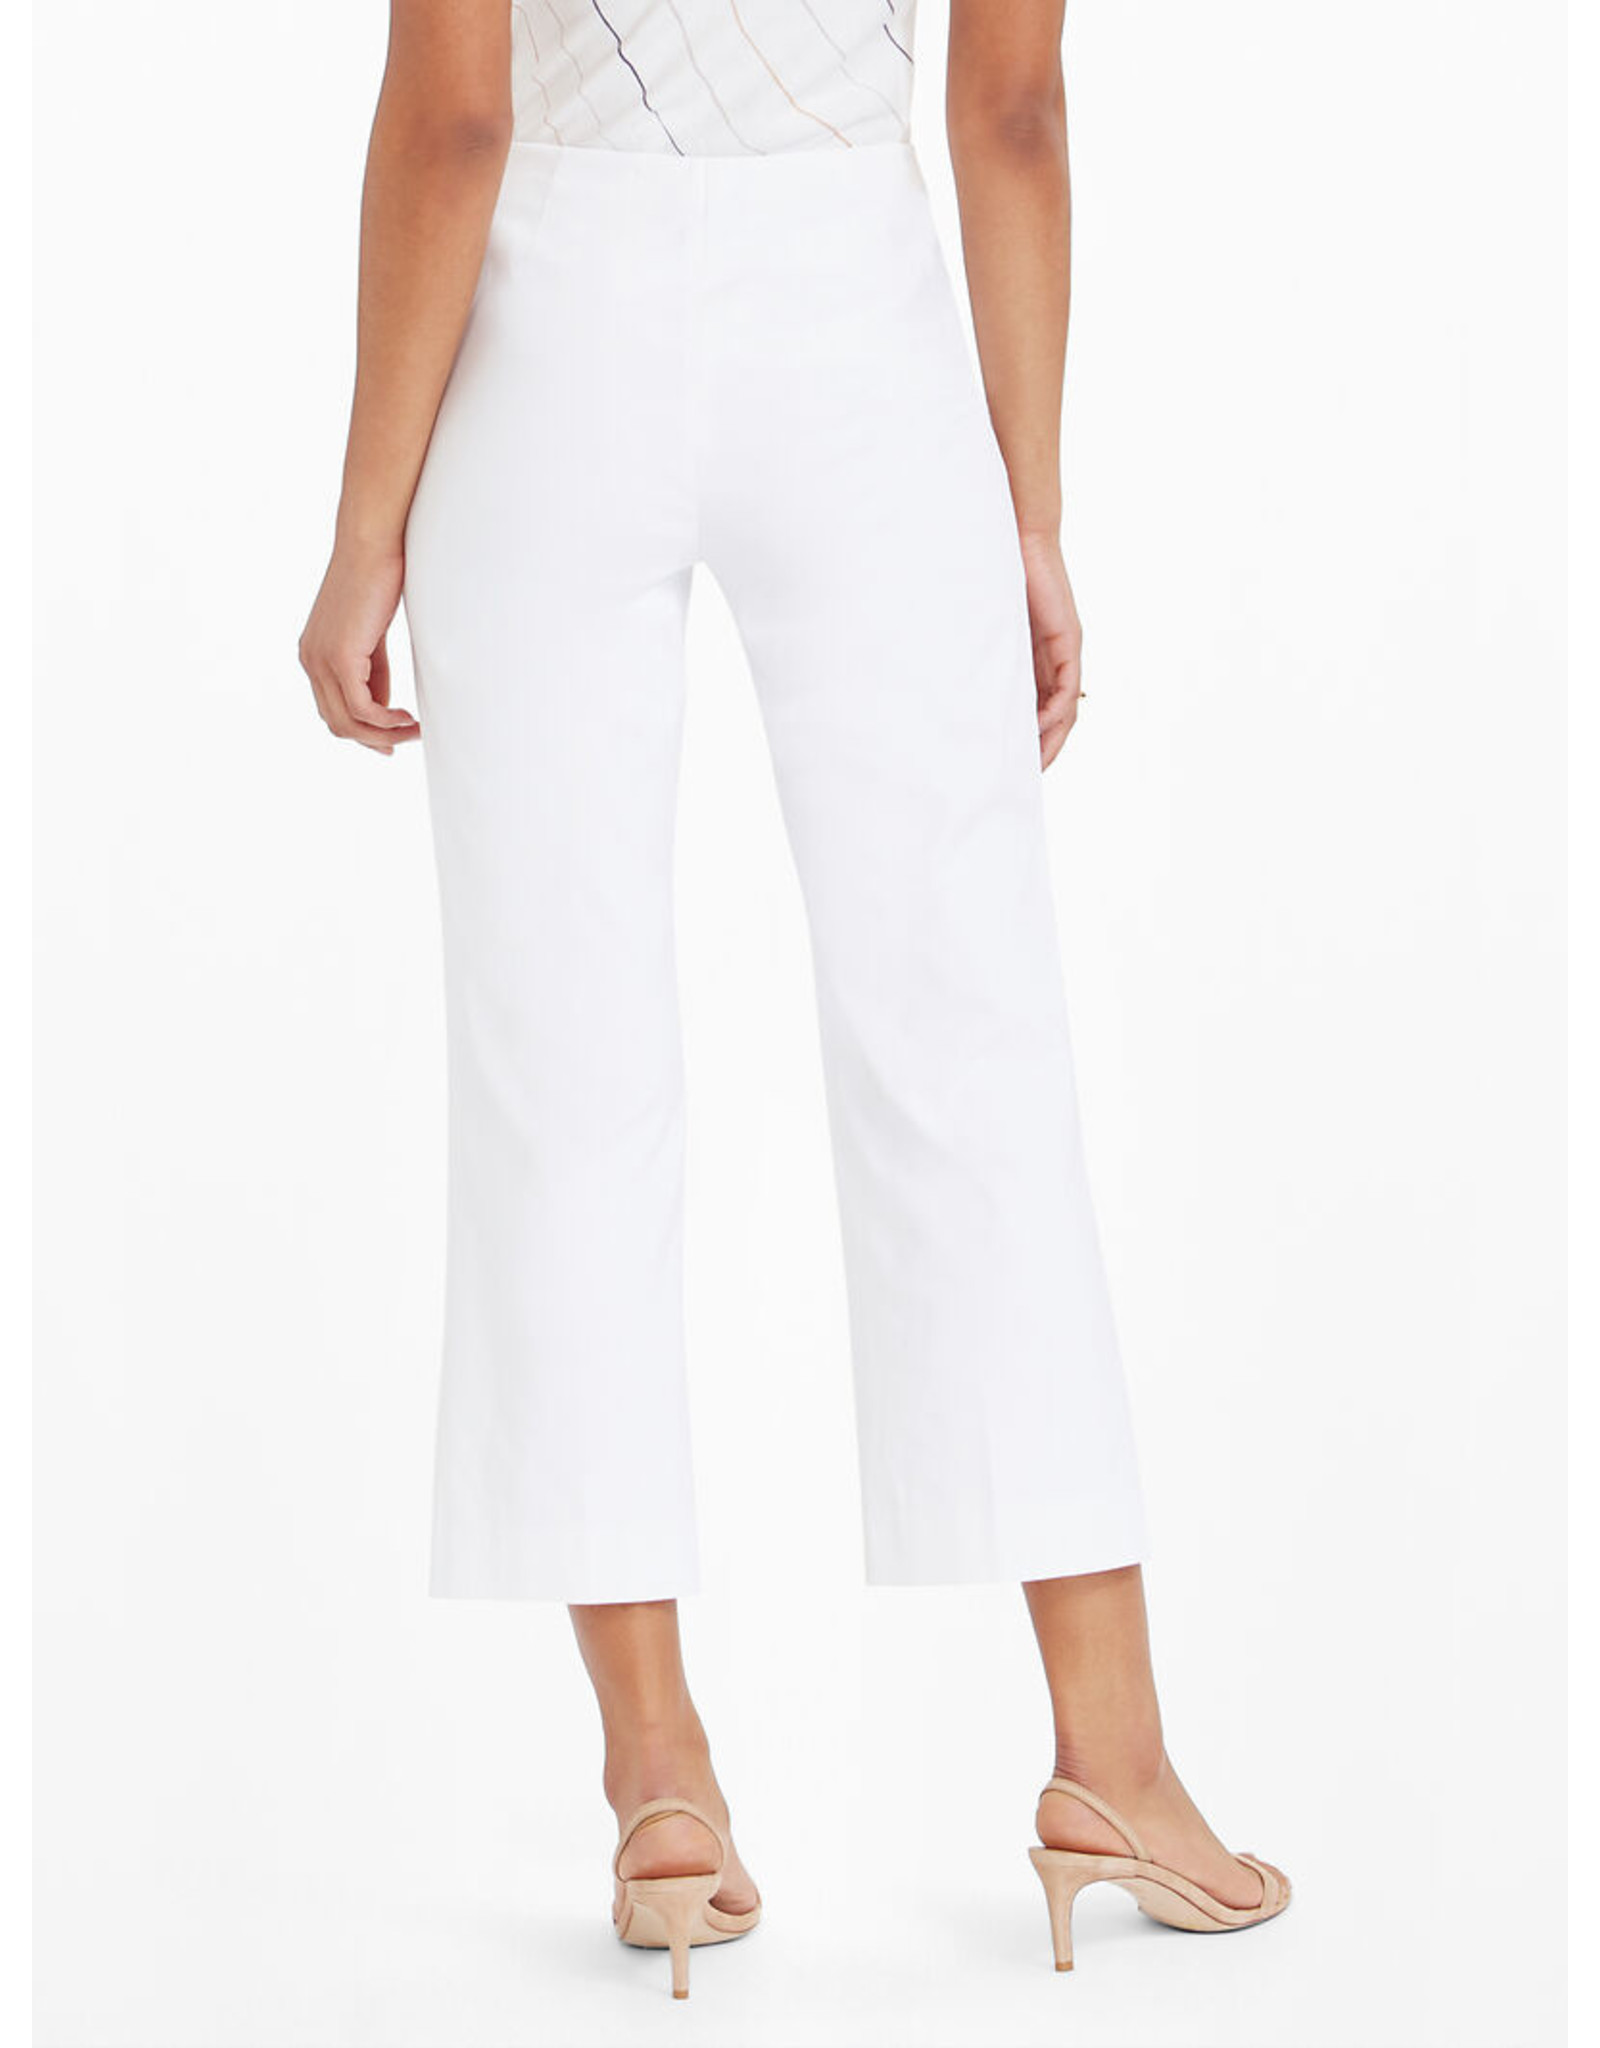 Nic+Zoe Everyday Crop Polished Wonderstretch Pant - Paper White